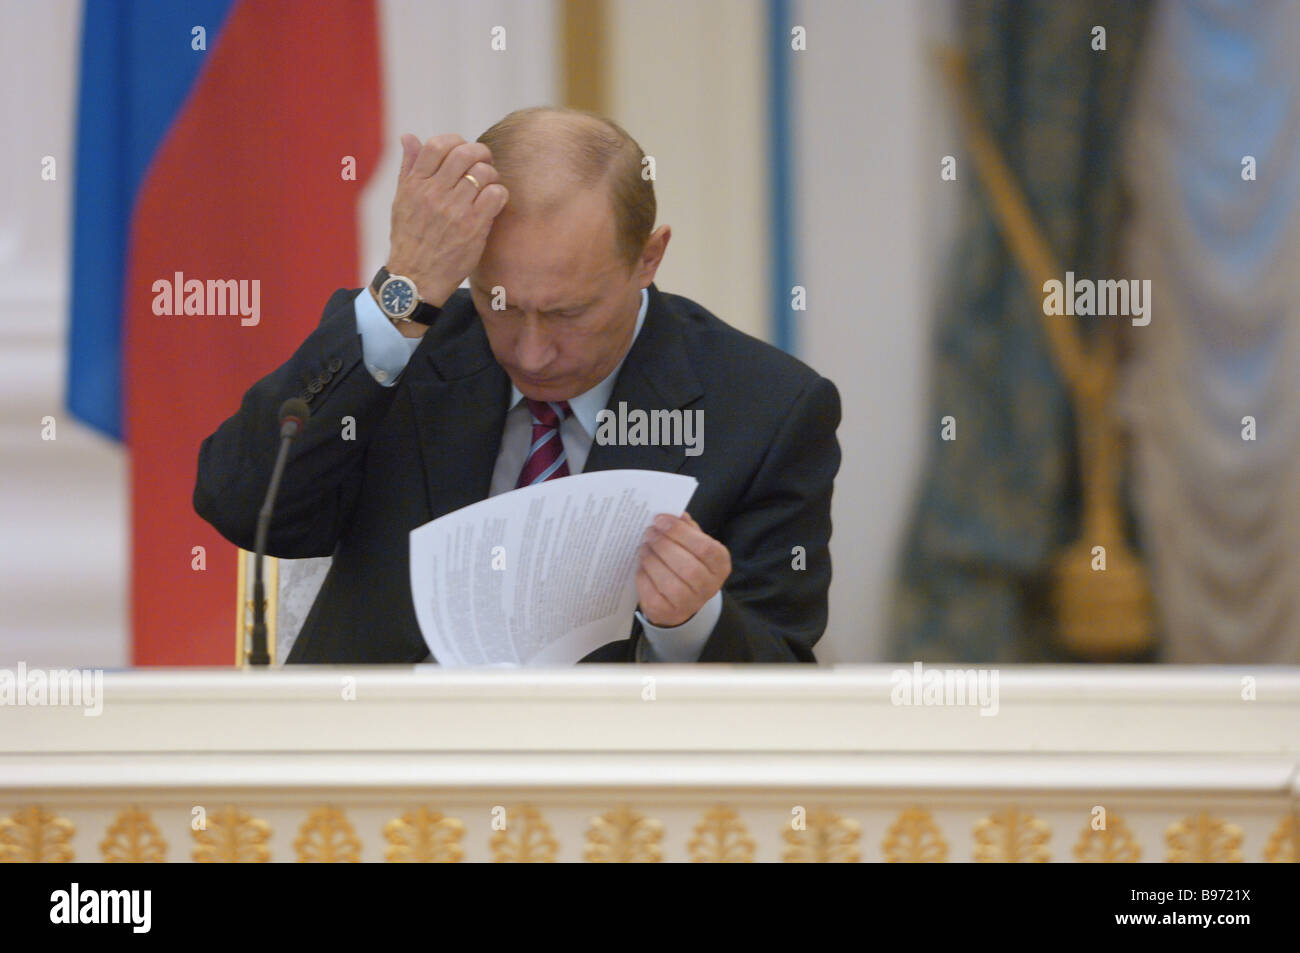 Russian President Vladimir Putin addresses spokesmen of the Russian Industrialists and Entrepreneurs Union RSPP - Stock Image